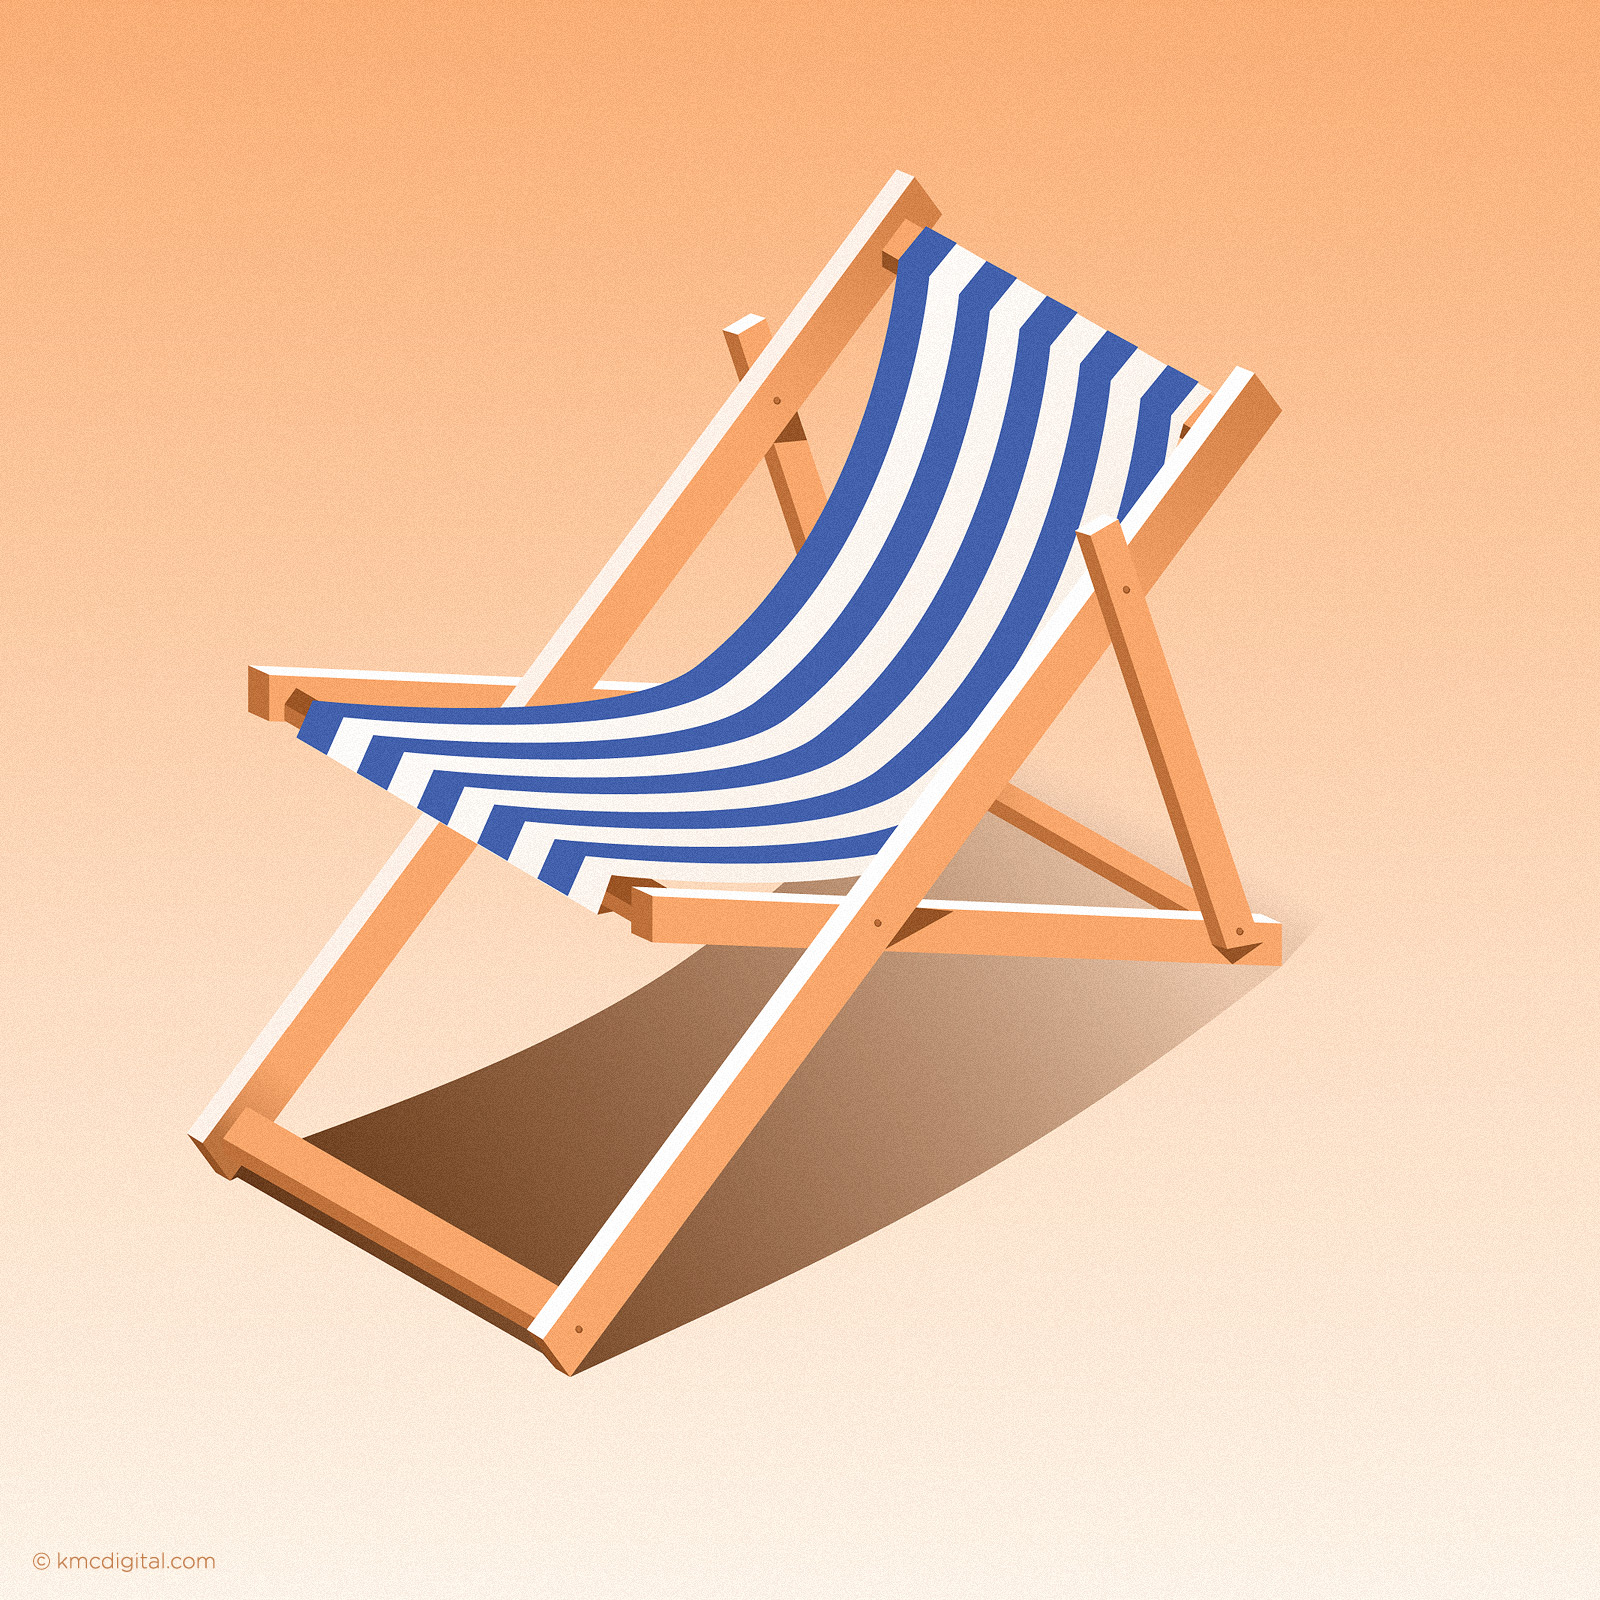 Deckchair Illustration vignette